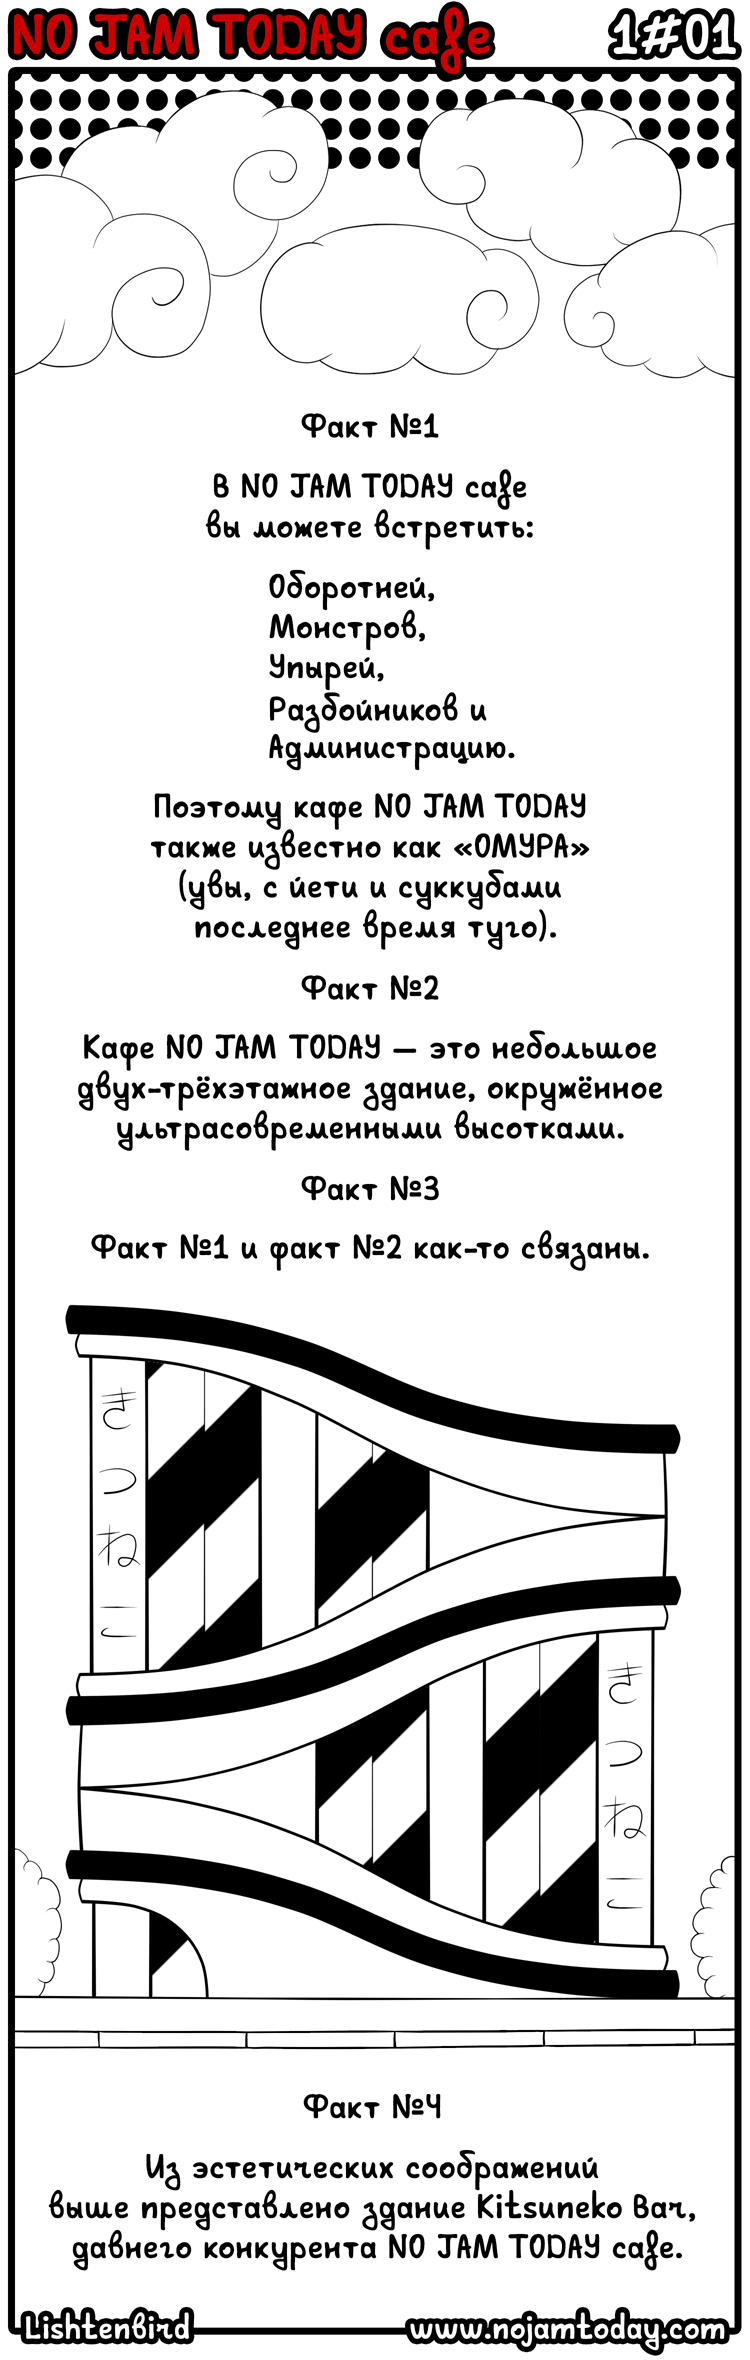 кафе no jam today